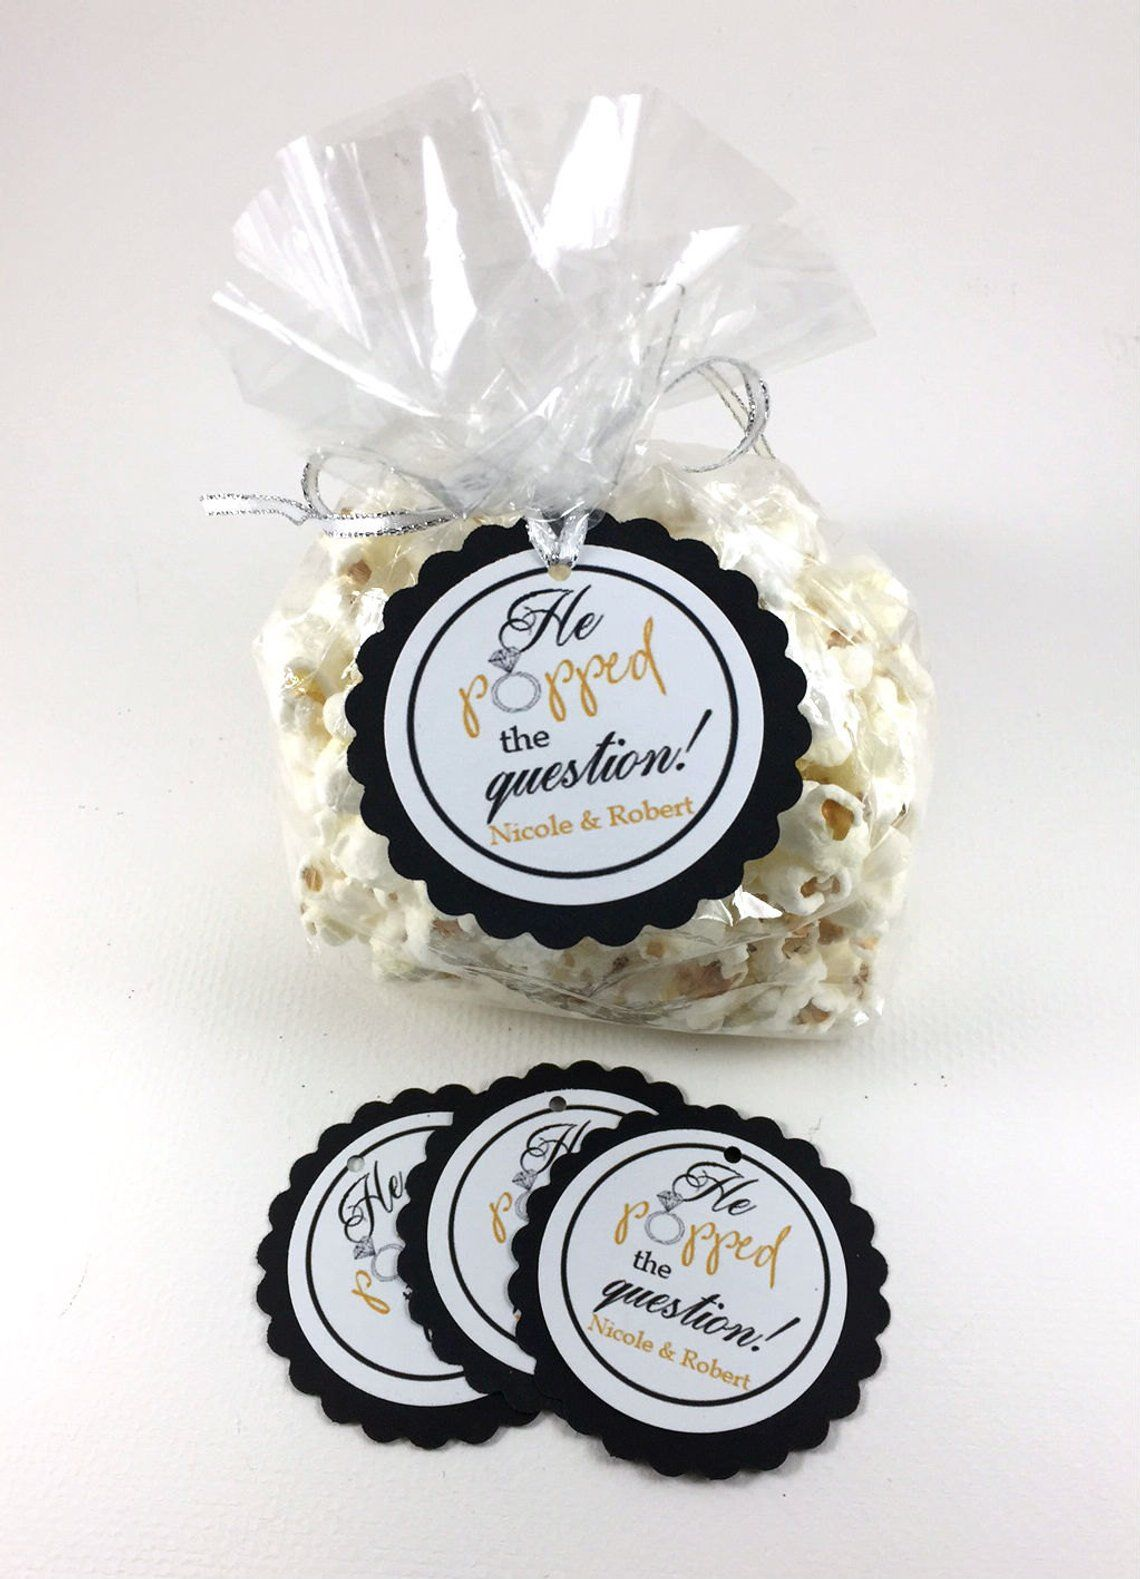 20 Engagement Party Tags, Engagement Party Hang Tags, Engagement Favors, Popcorn Engagement Favors, Engagement Party Favor, Candy Bag Tags